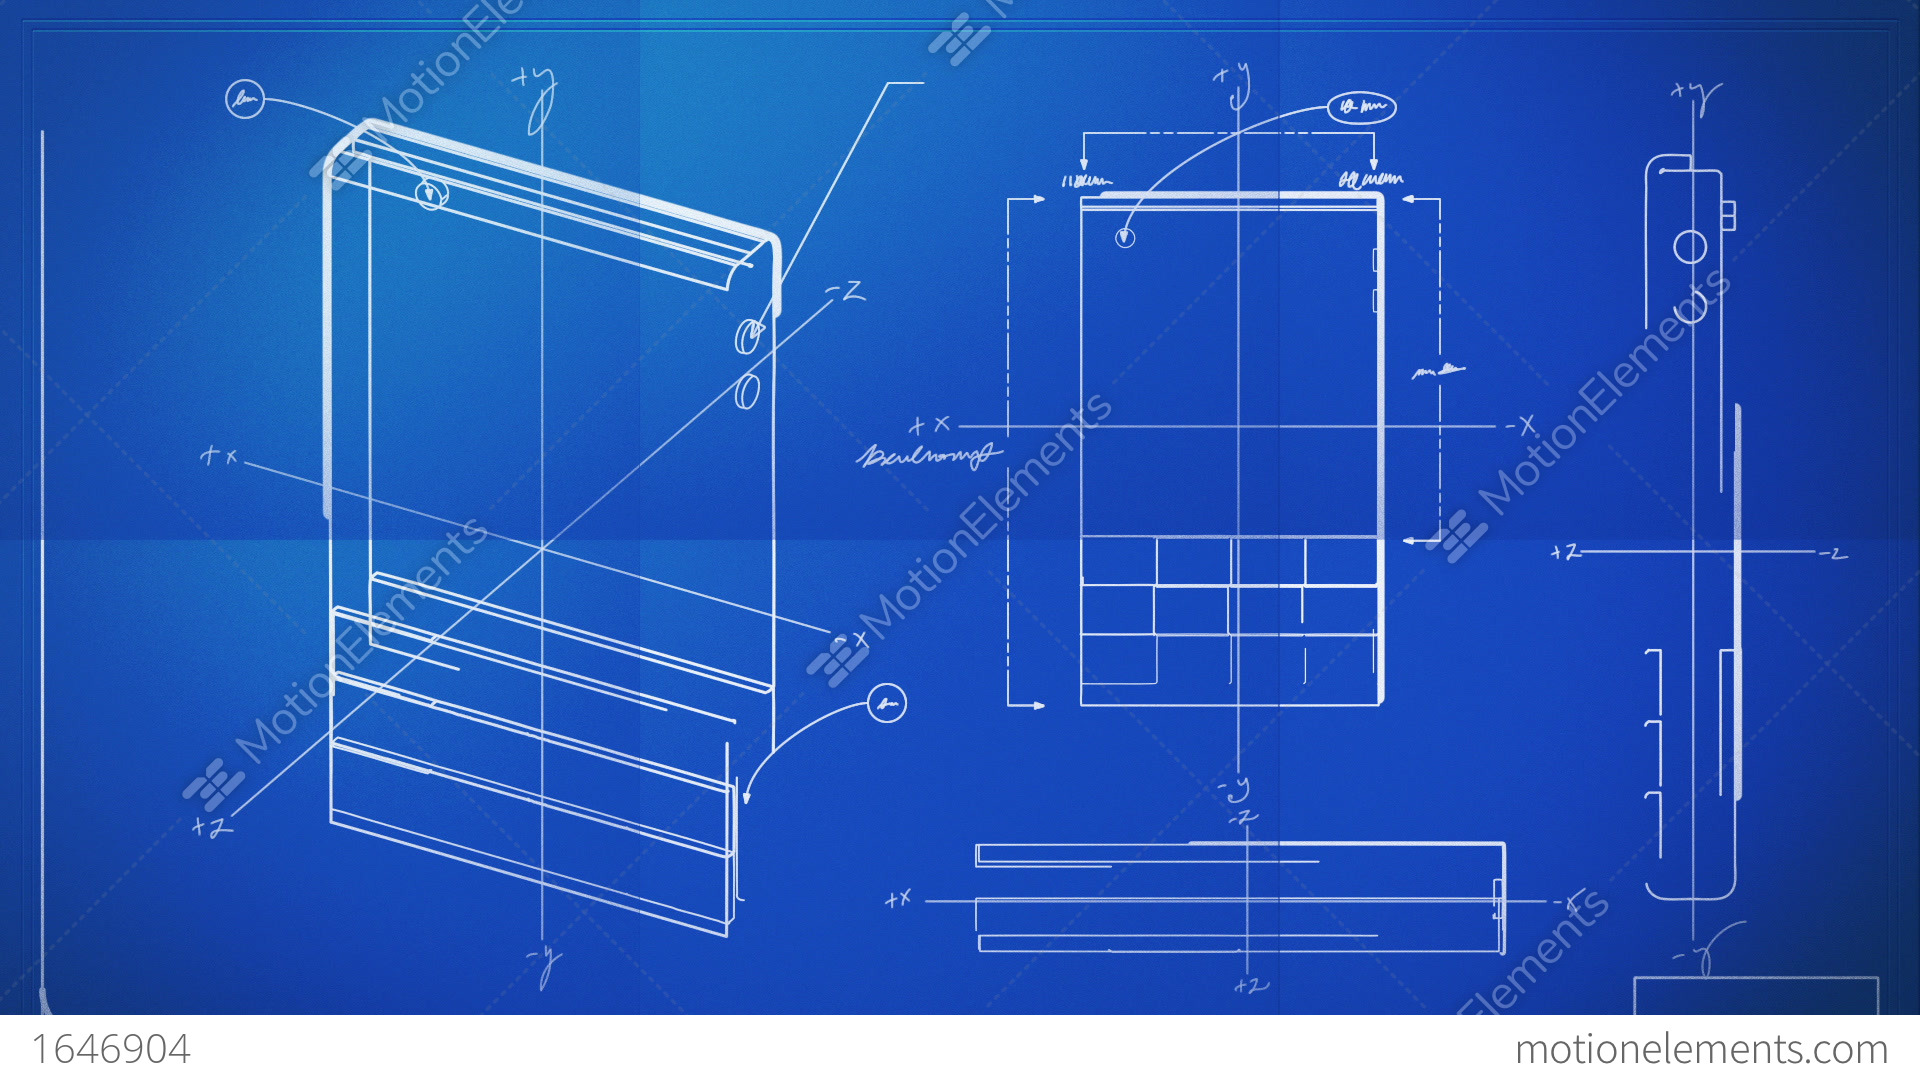 Classic smartphone technical drawing blueprint stock animation 1646904 classic smartphone technical drawing blueprint stock video footage malvernweather Choice Image